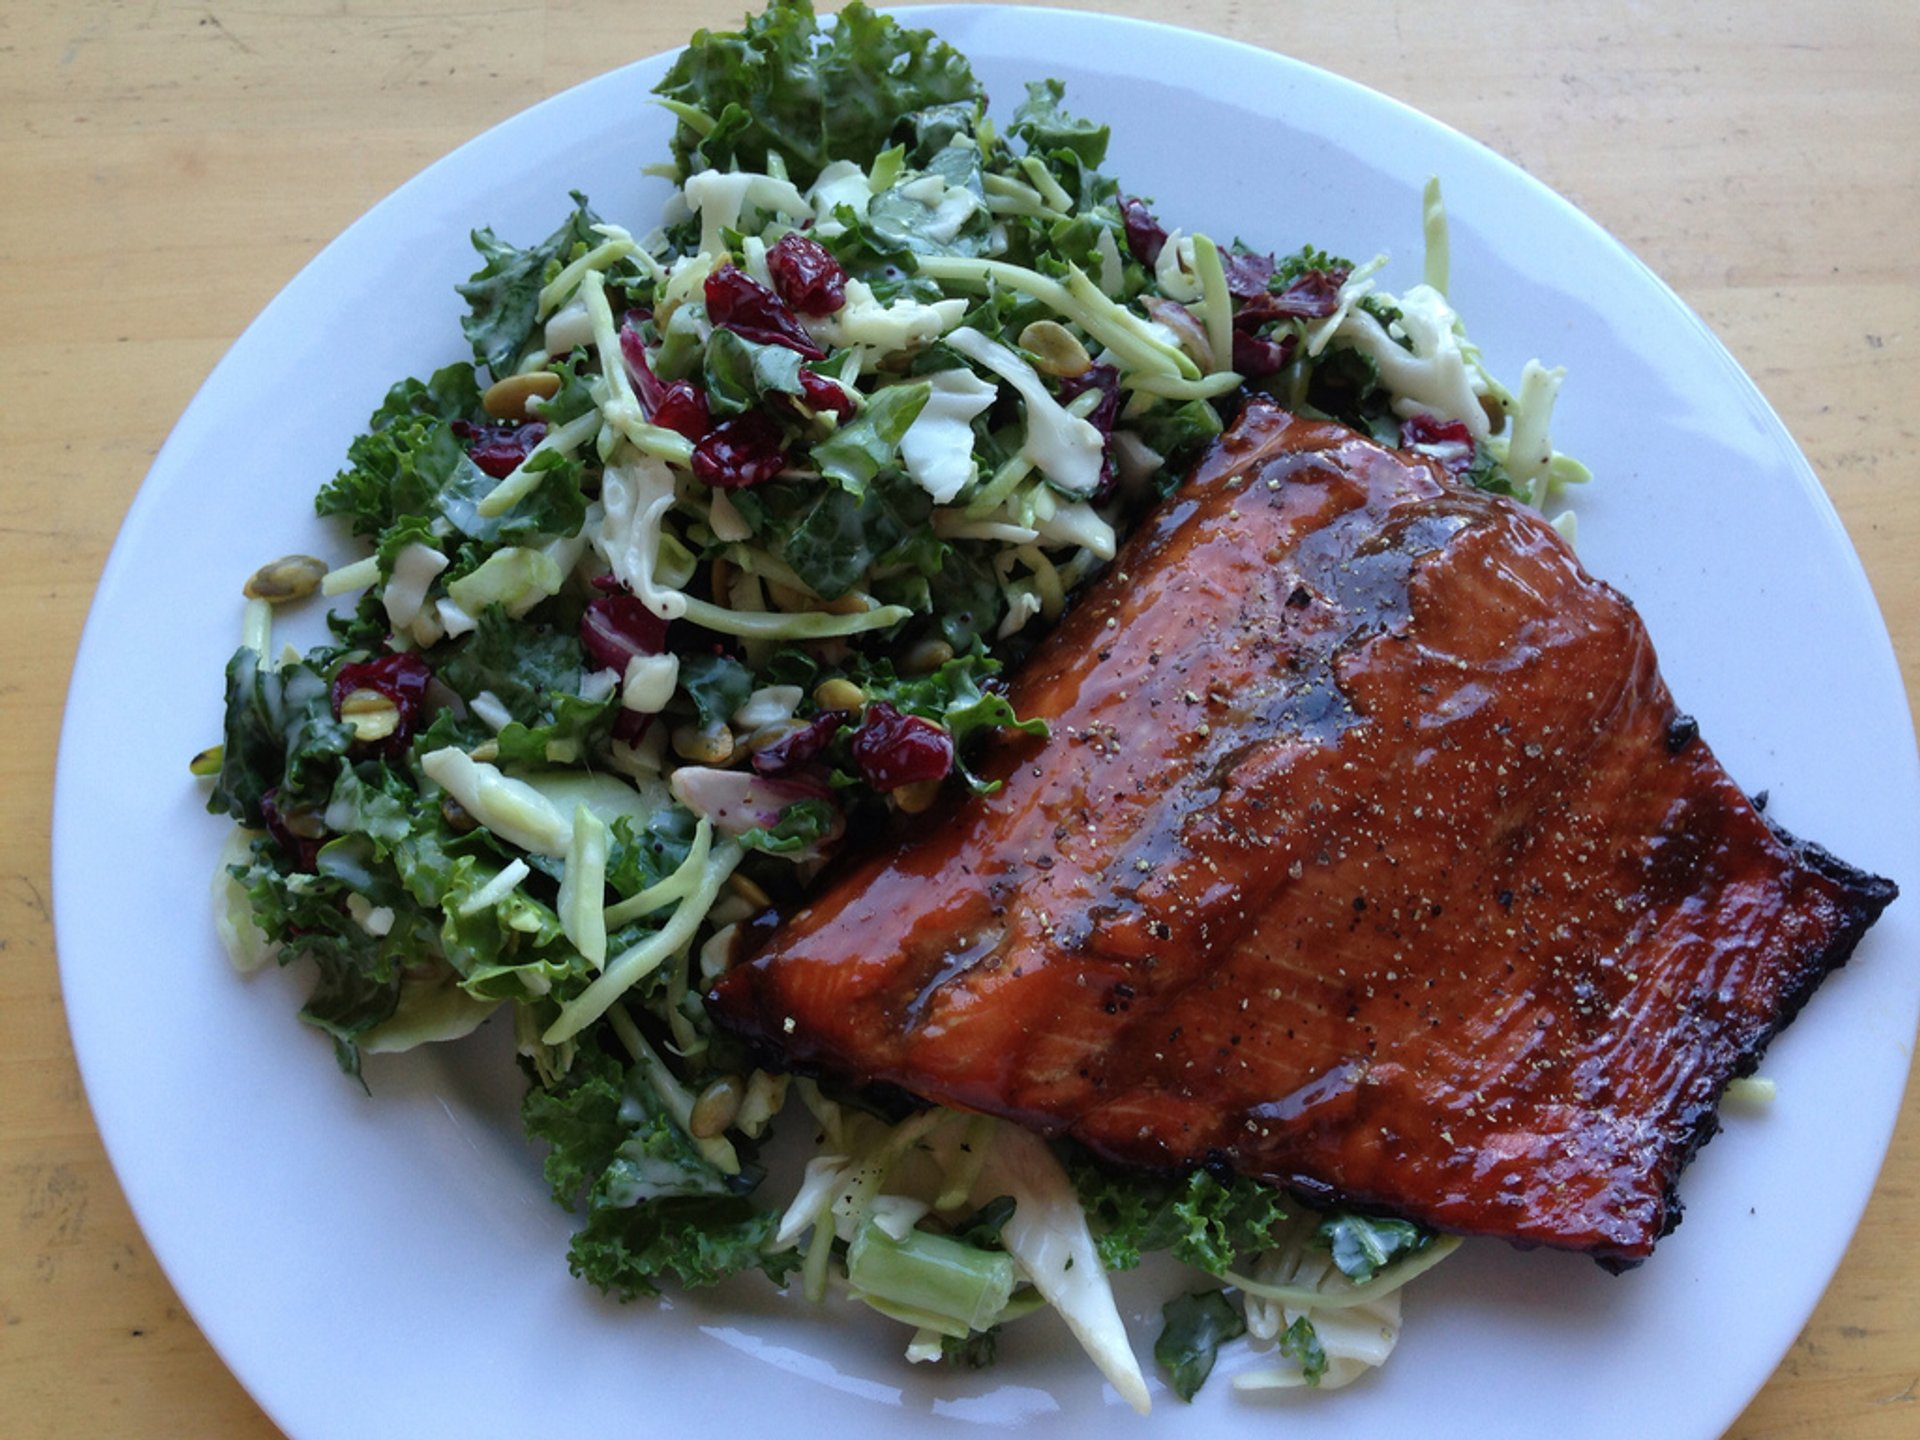 Grilled teriyaki glazed wild sockeye salmon fillet with a sweet kale salad kit salad 2020